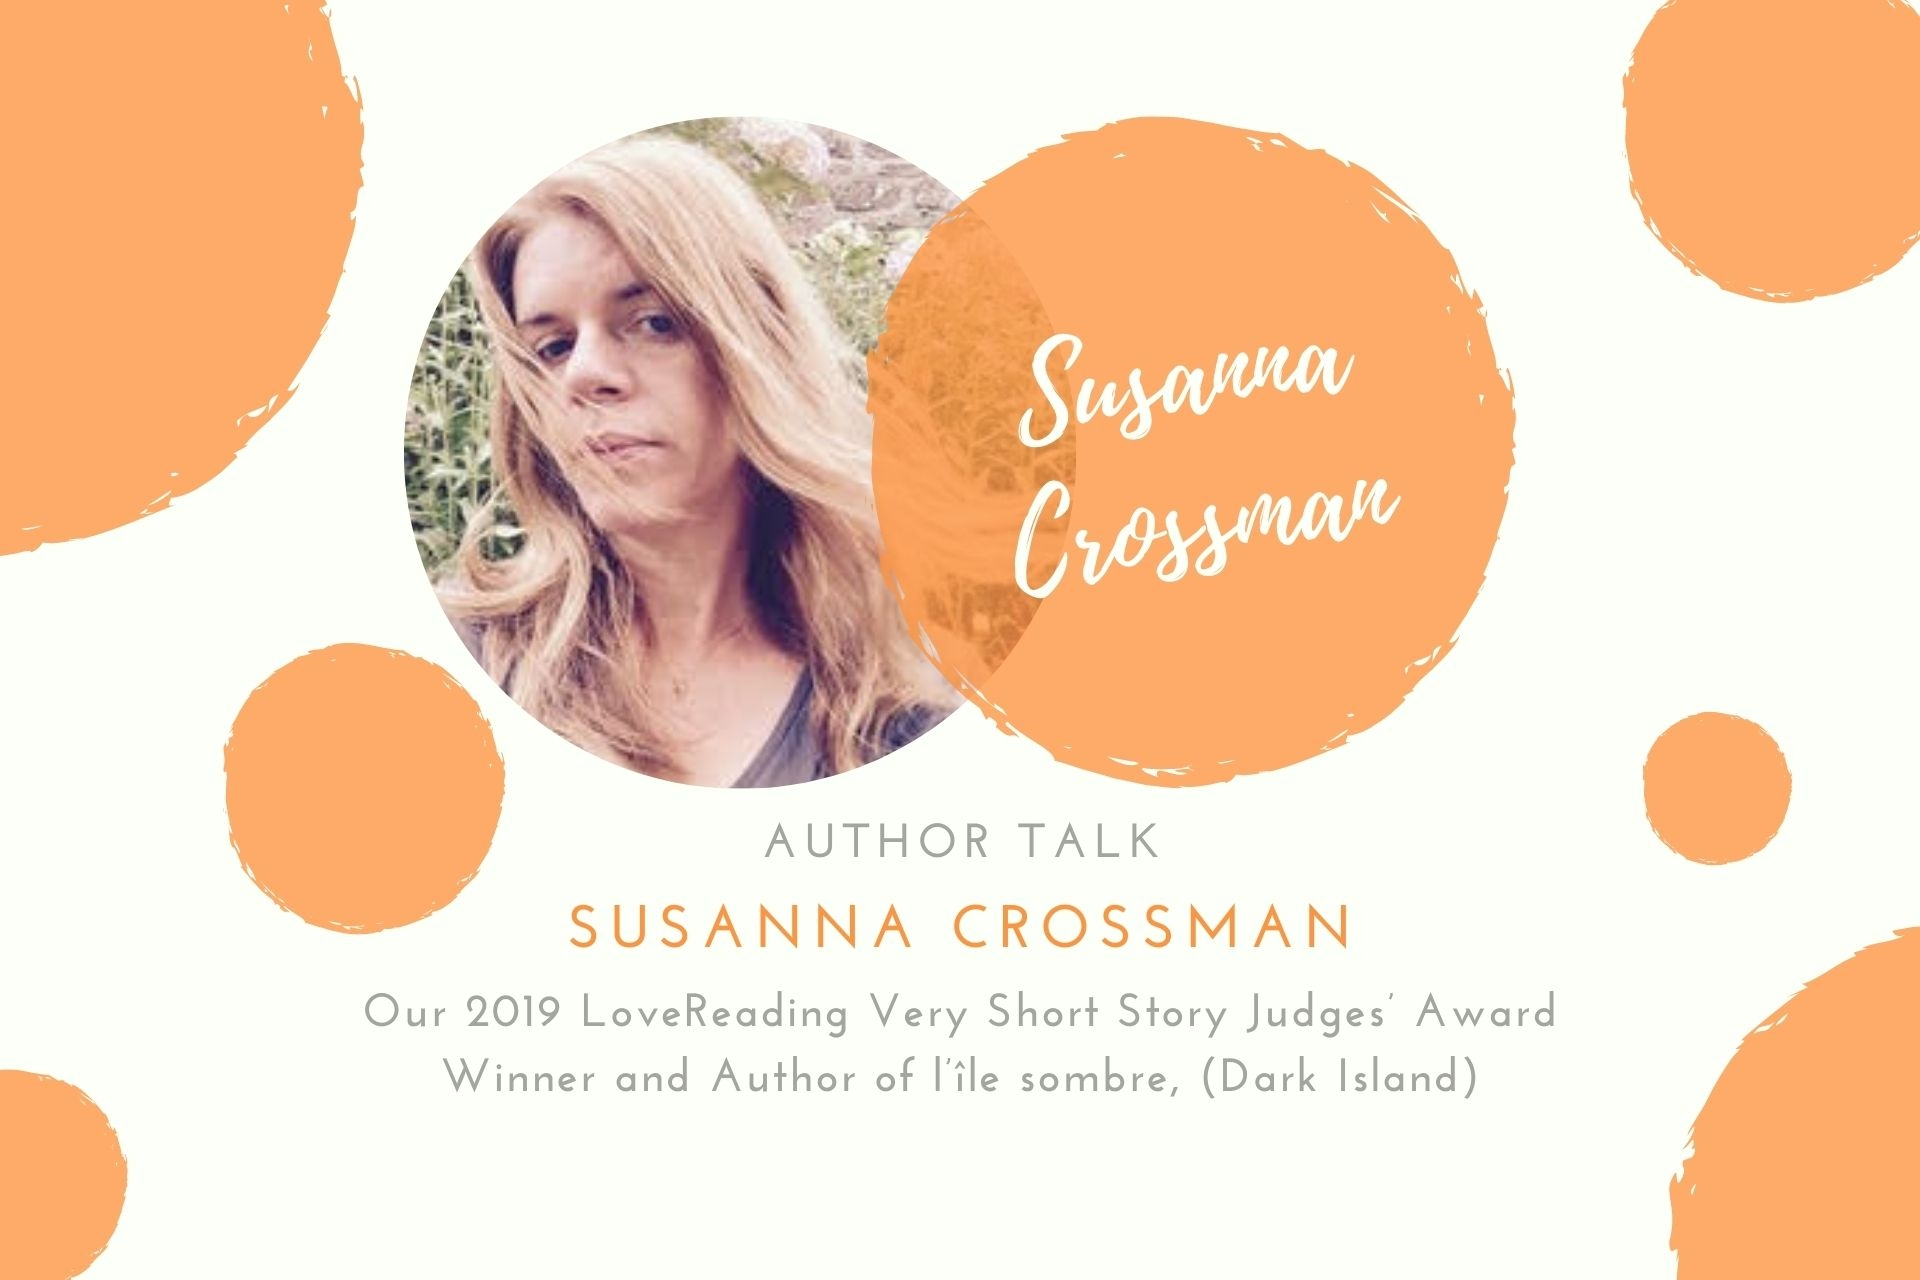 Q&A with Our 2019 LoveReading Very Short Story Judges' Award Winner and Author Susanna Crossman